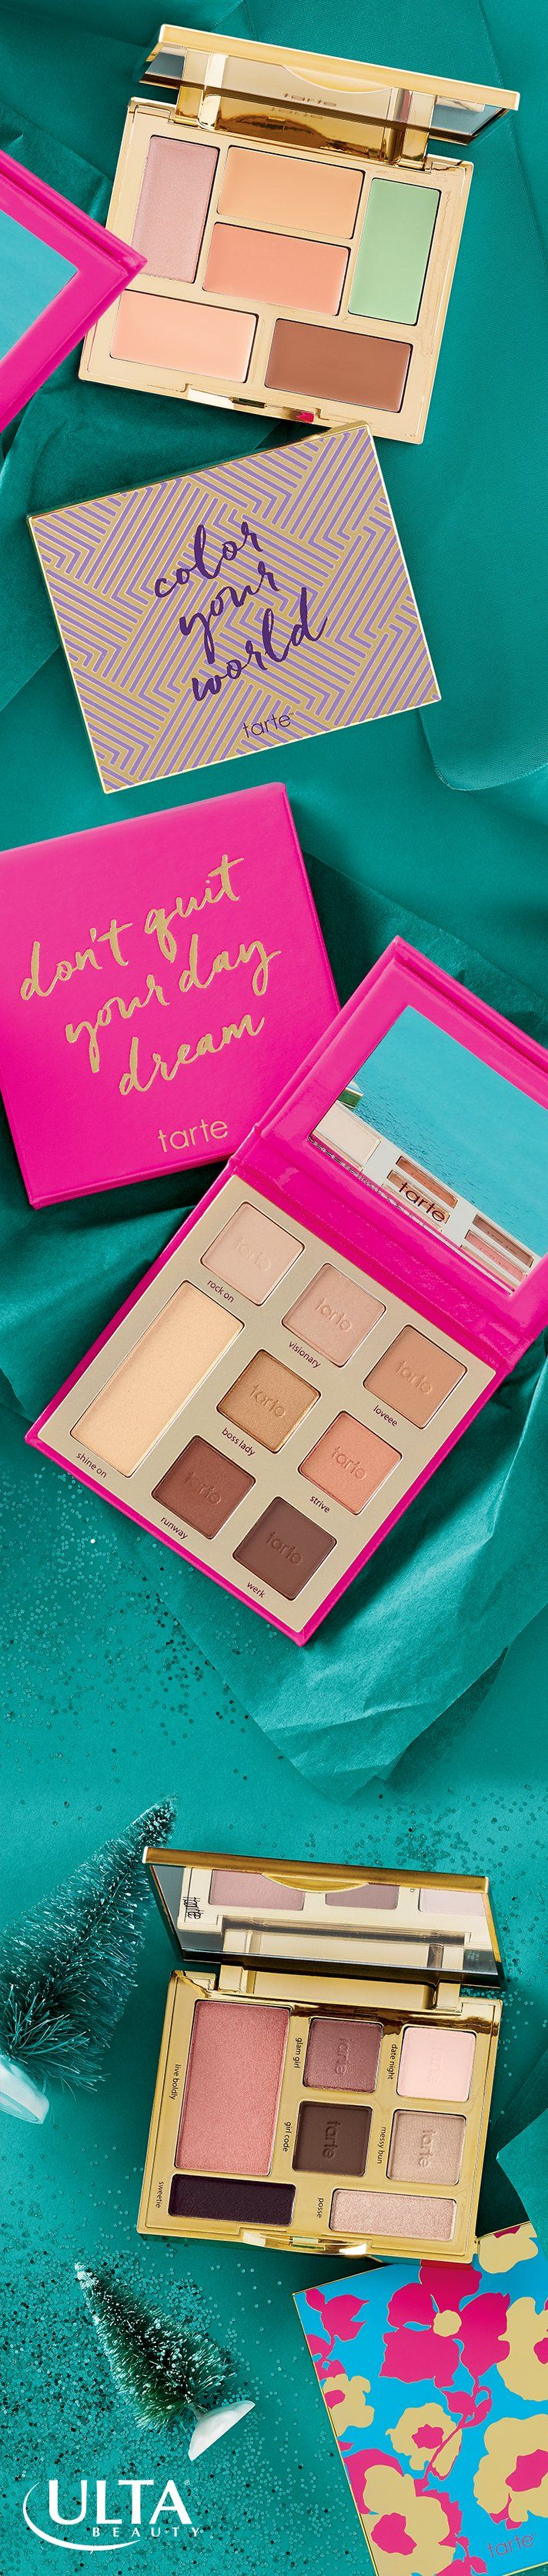 Give Tarte, from the heart. Tarte kits and palettes are such a luxe way to celebrate the holidays! Shop eyeshadow palettes, highlighting palettes and more at Ulta Beauty.